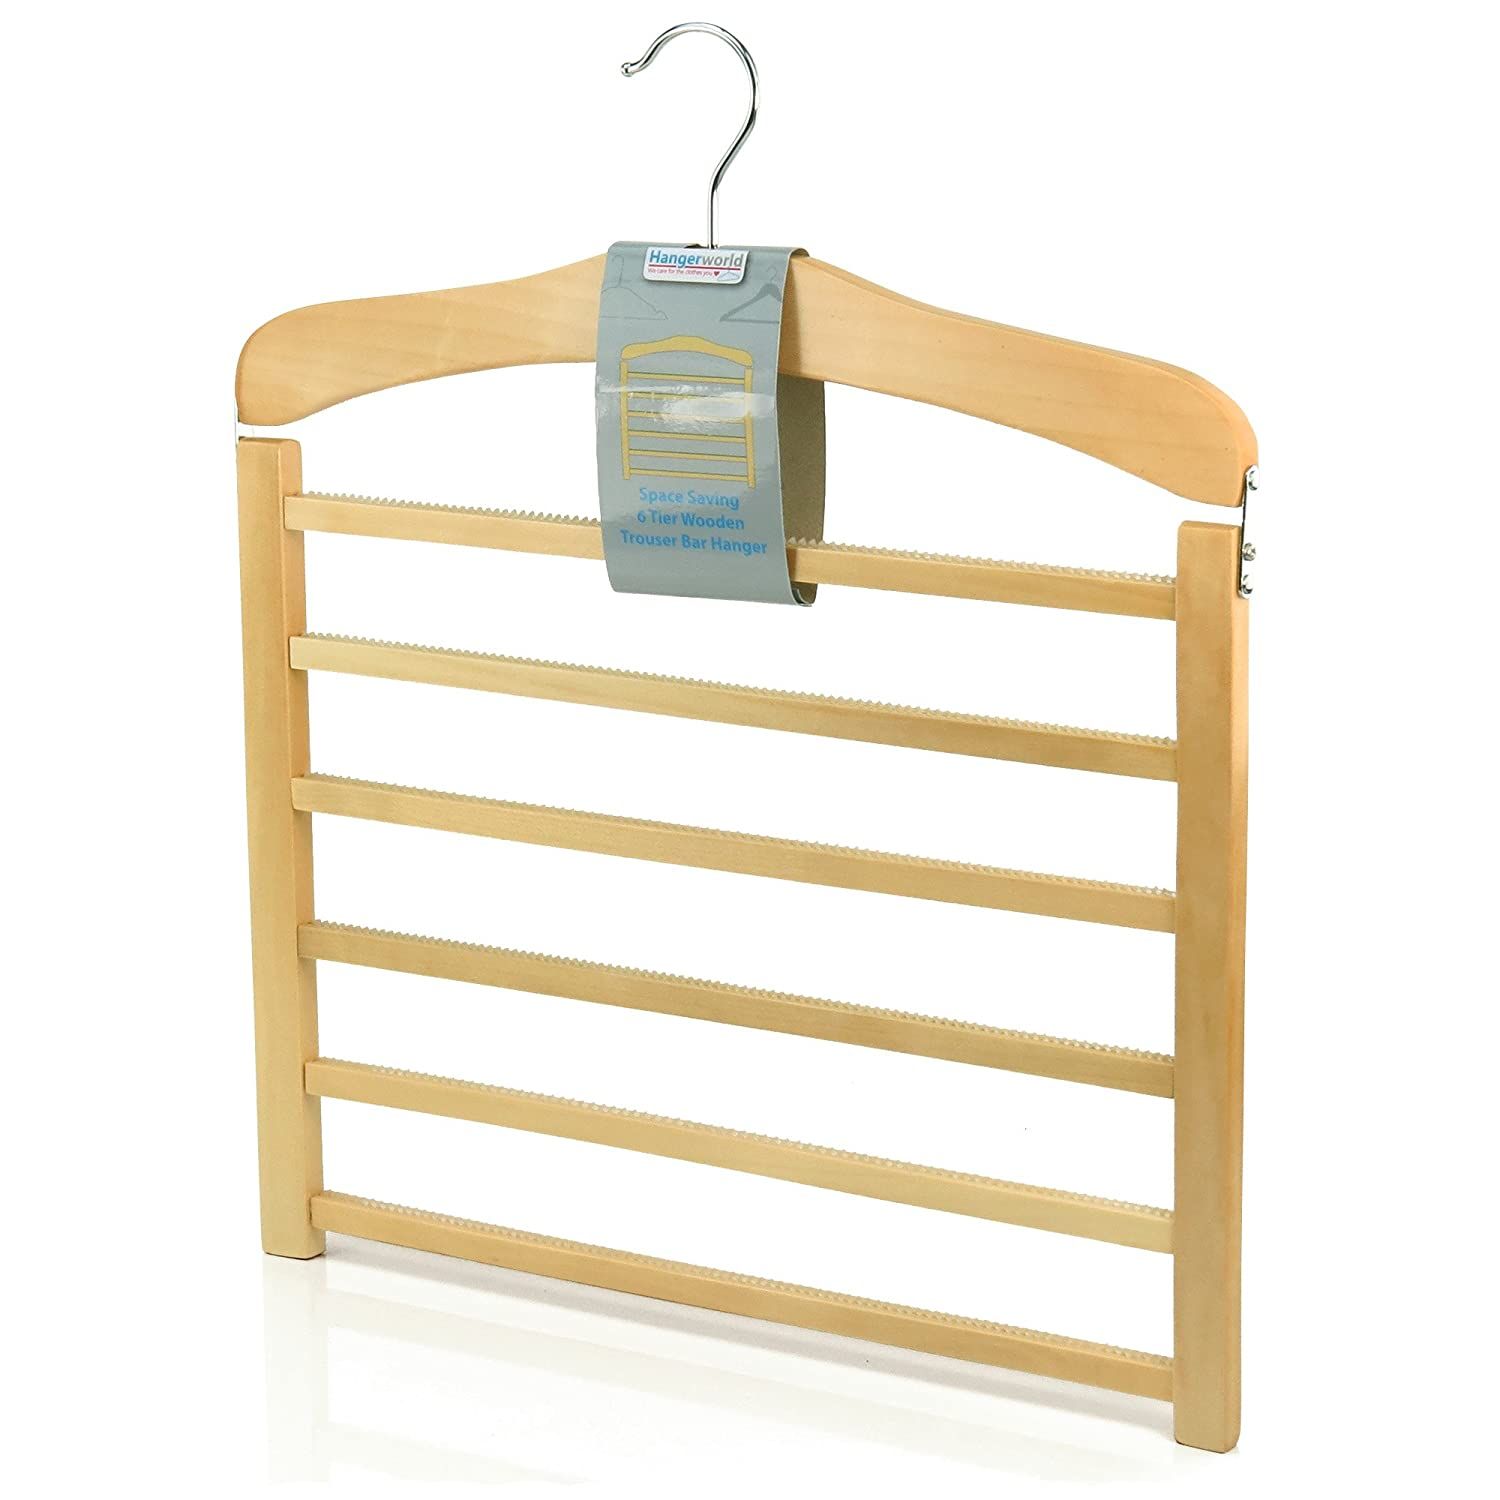 Hangerworld Premium Quality 6 Tier Wooden Trouser Bar Clothes Hanger - Holds 6 Pairs of Trousers (Single Item) WH-6TIER-NAT_1